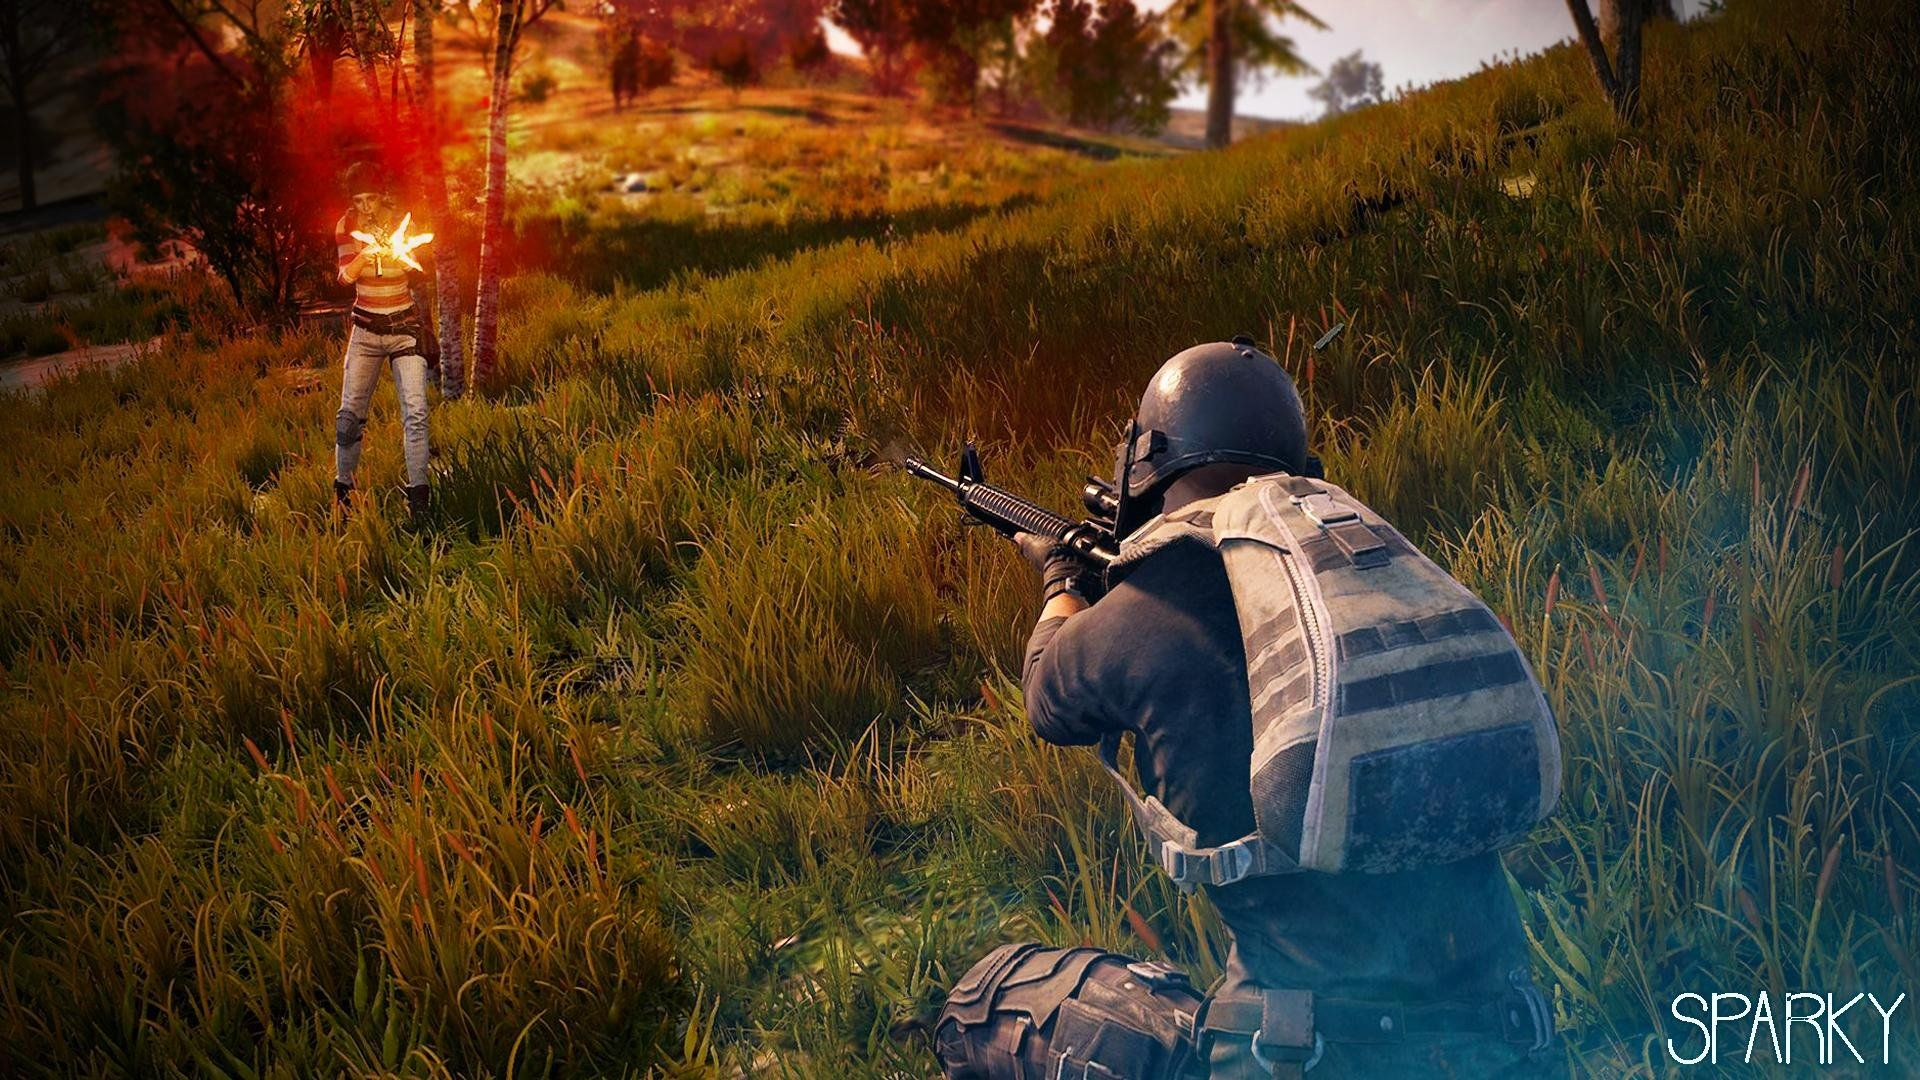 Pubg 1920x1080 Wallpapers Top Free Pubg 1920x1080 Backgrounds Wallpaperaccess